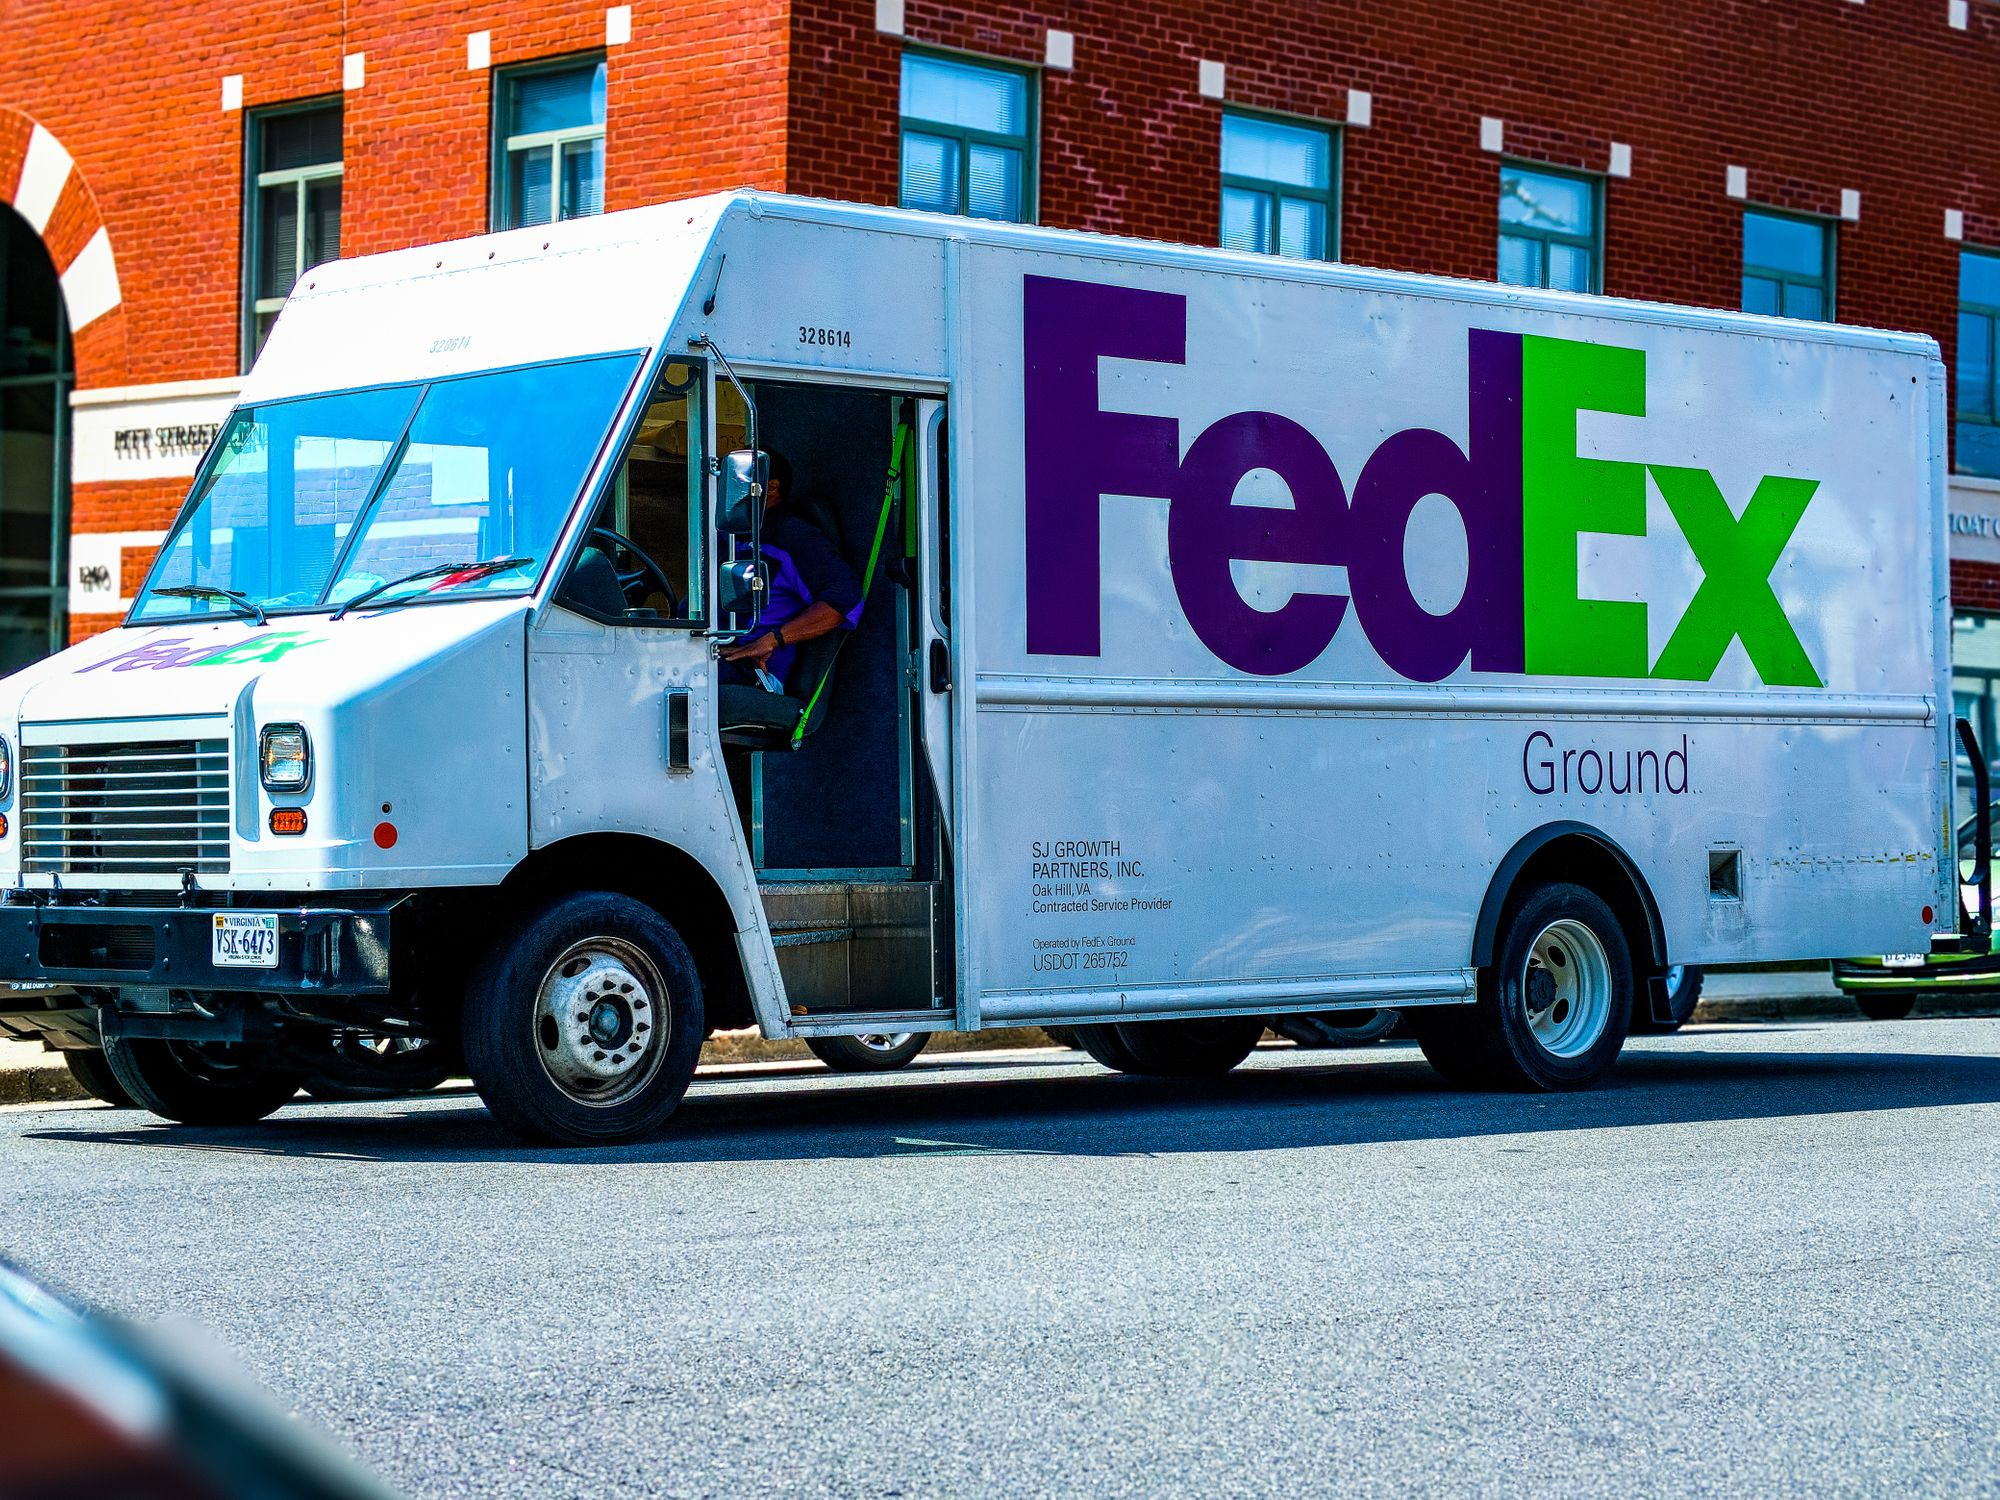 Fedex Truck Using Ground Service for Last-Mile of Delivery